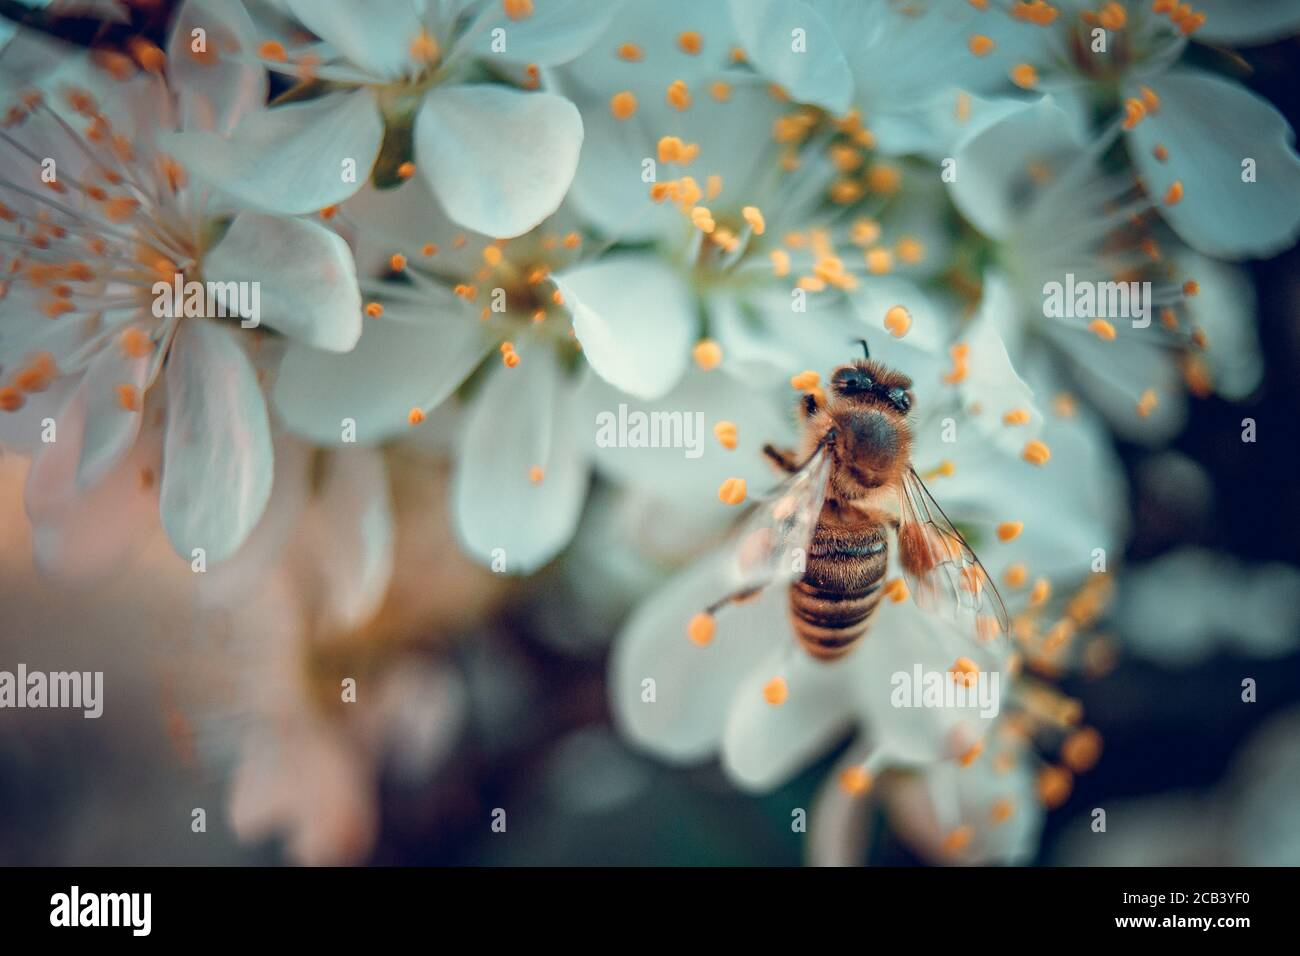 The bee collects pollen from white plum flowers. Spring blossoming scene Stock Photo